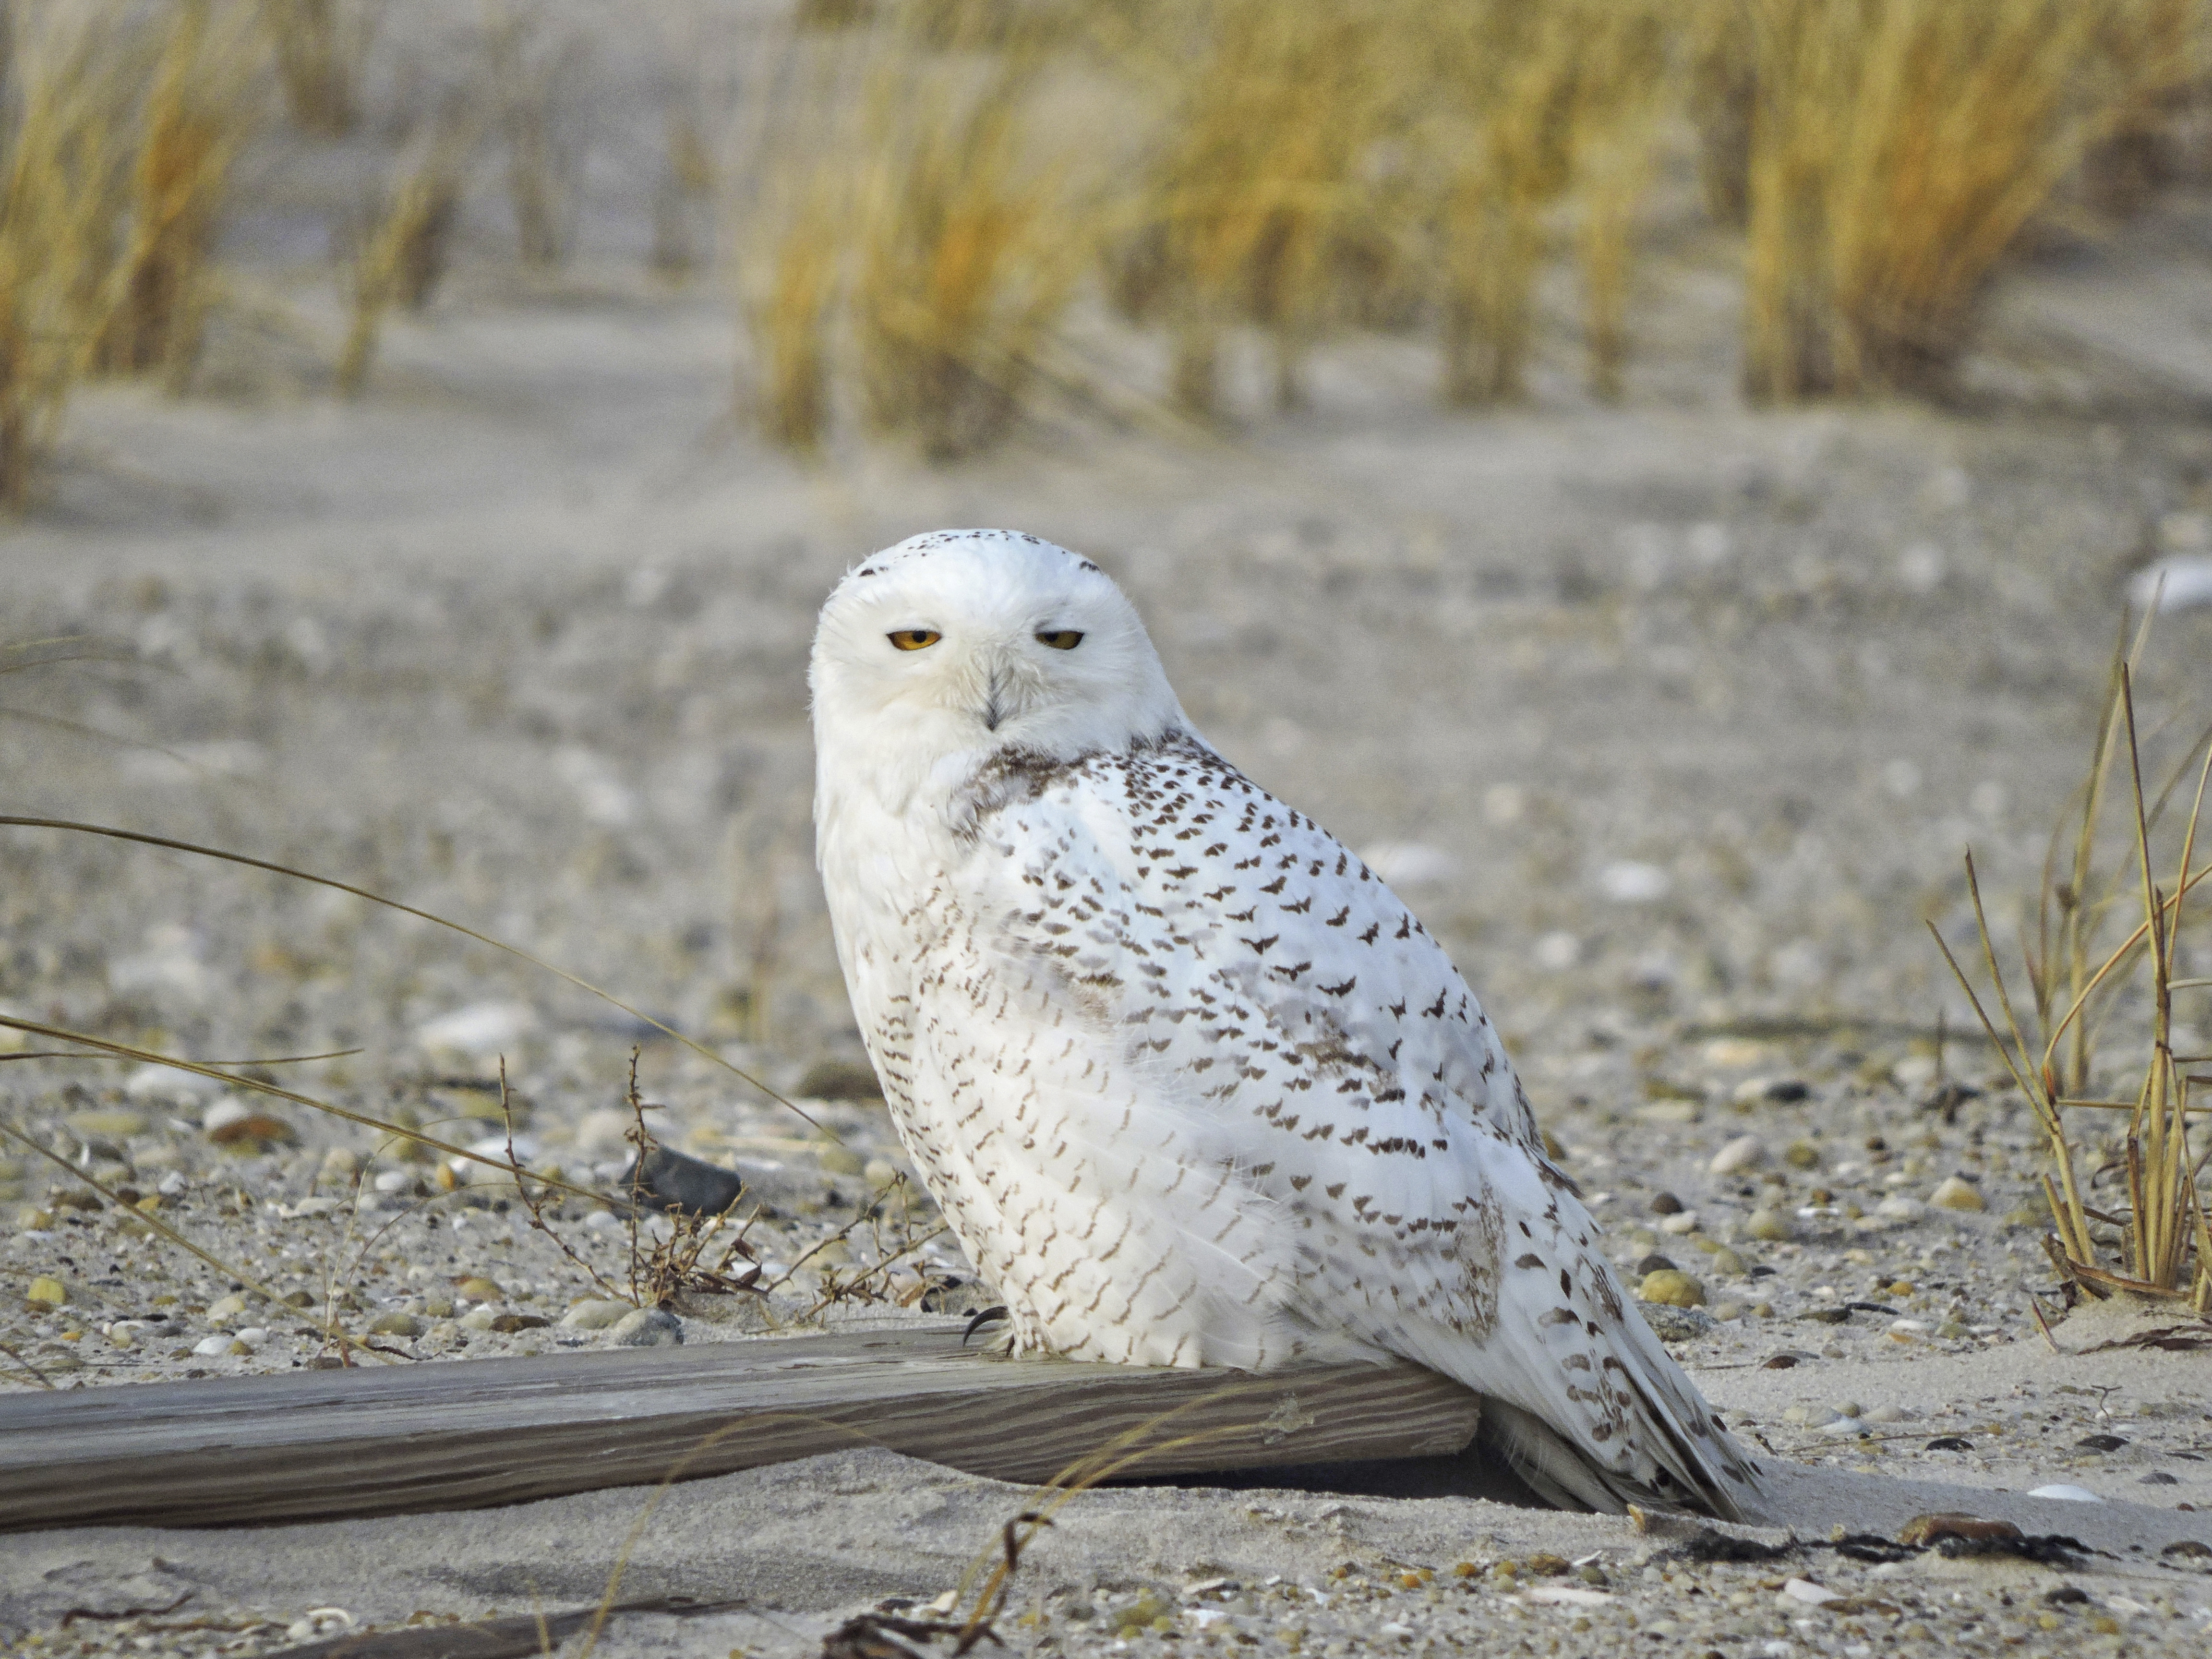 Birders are on the lookout for this regal arctic visitor this month.